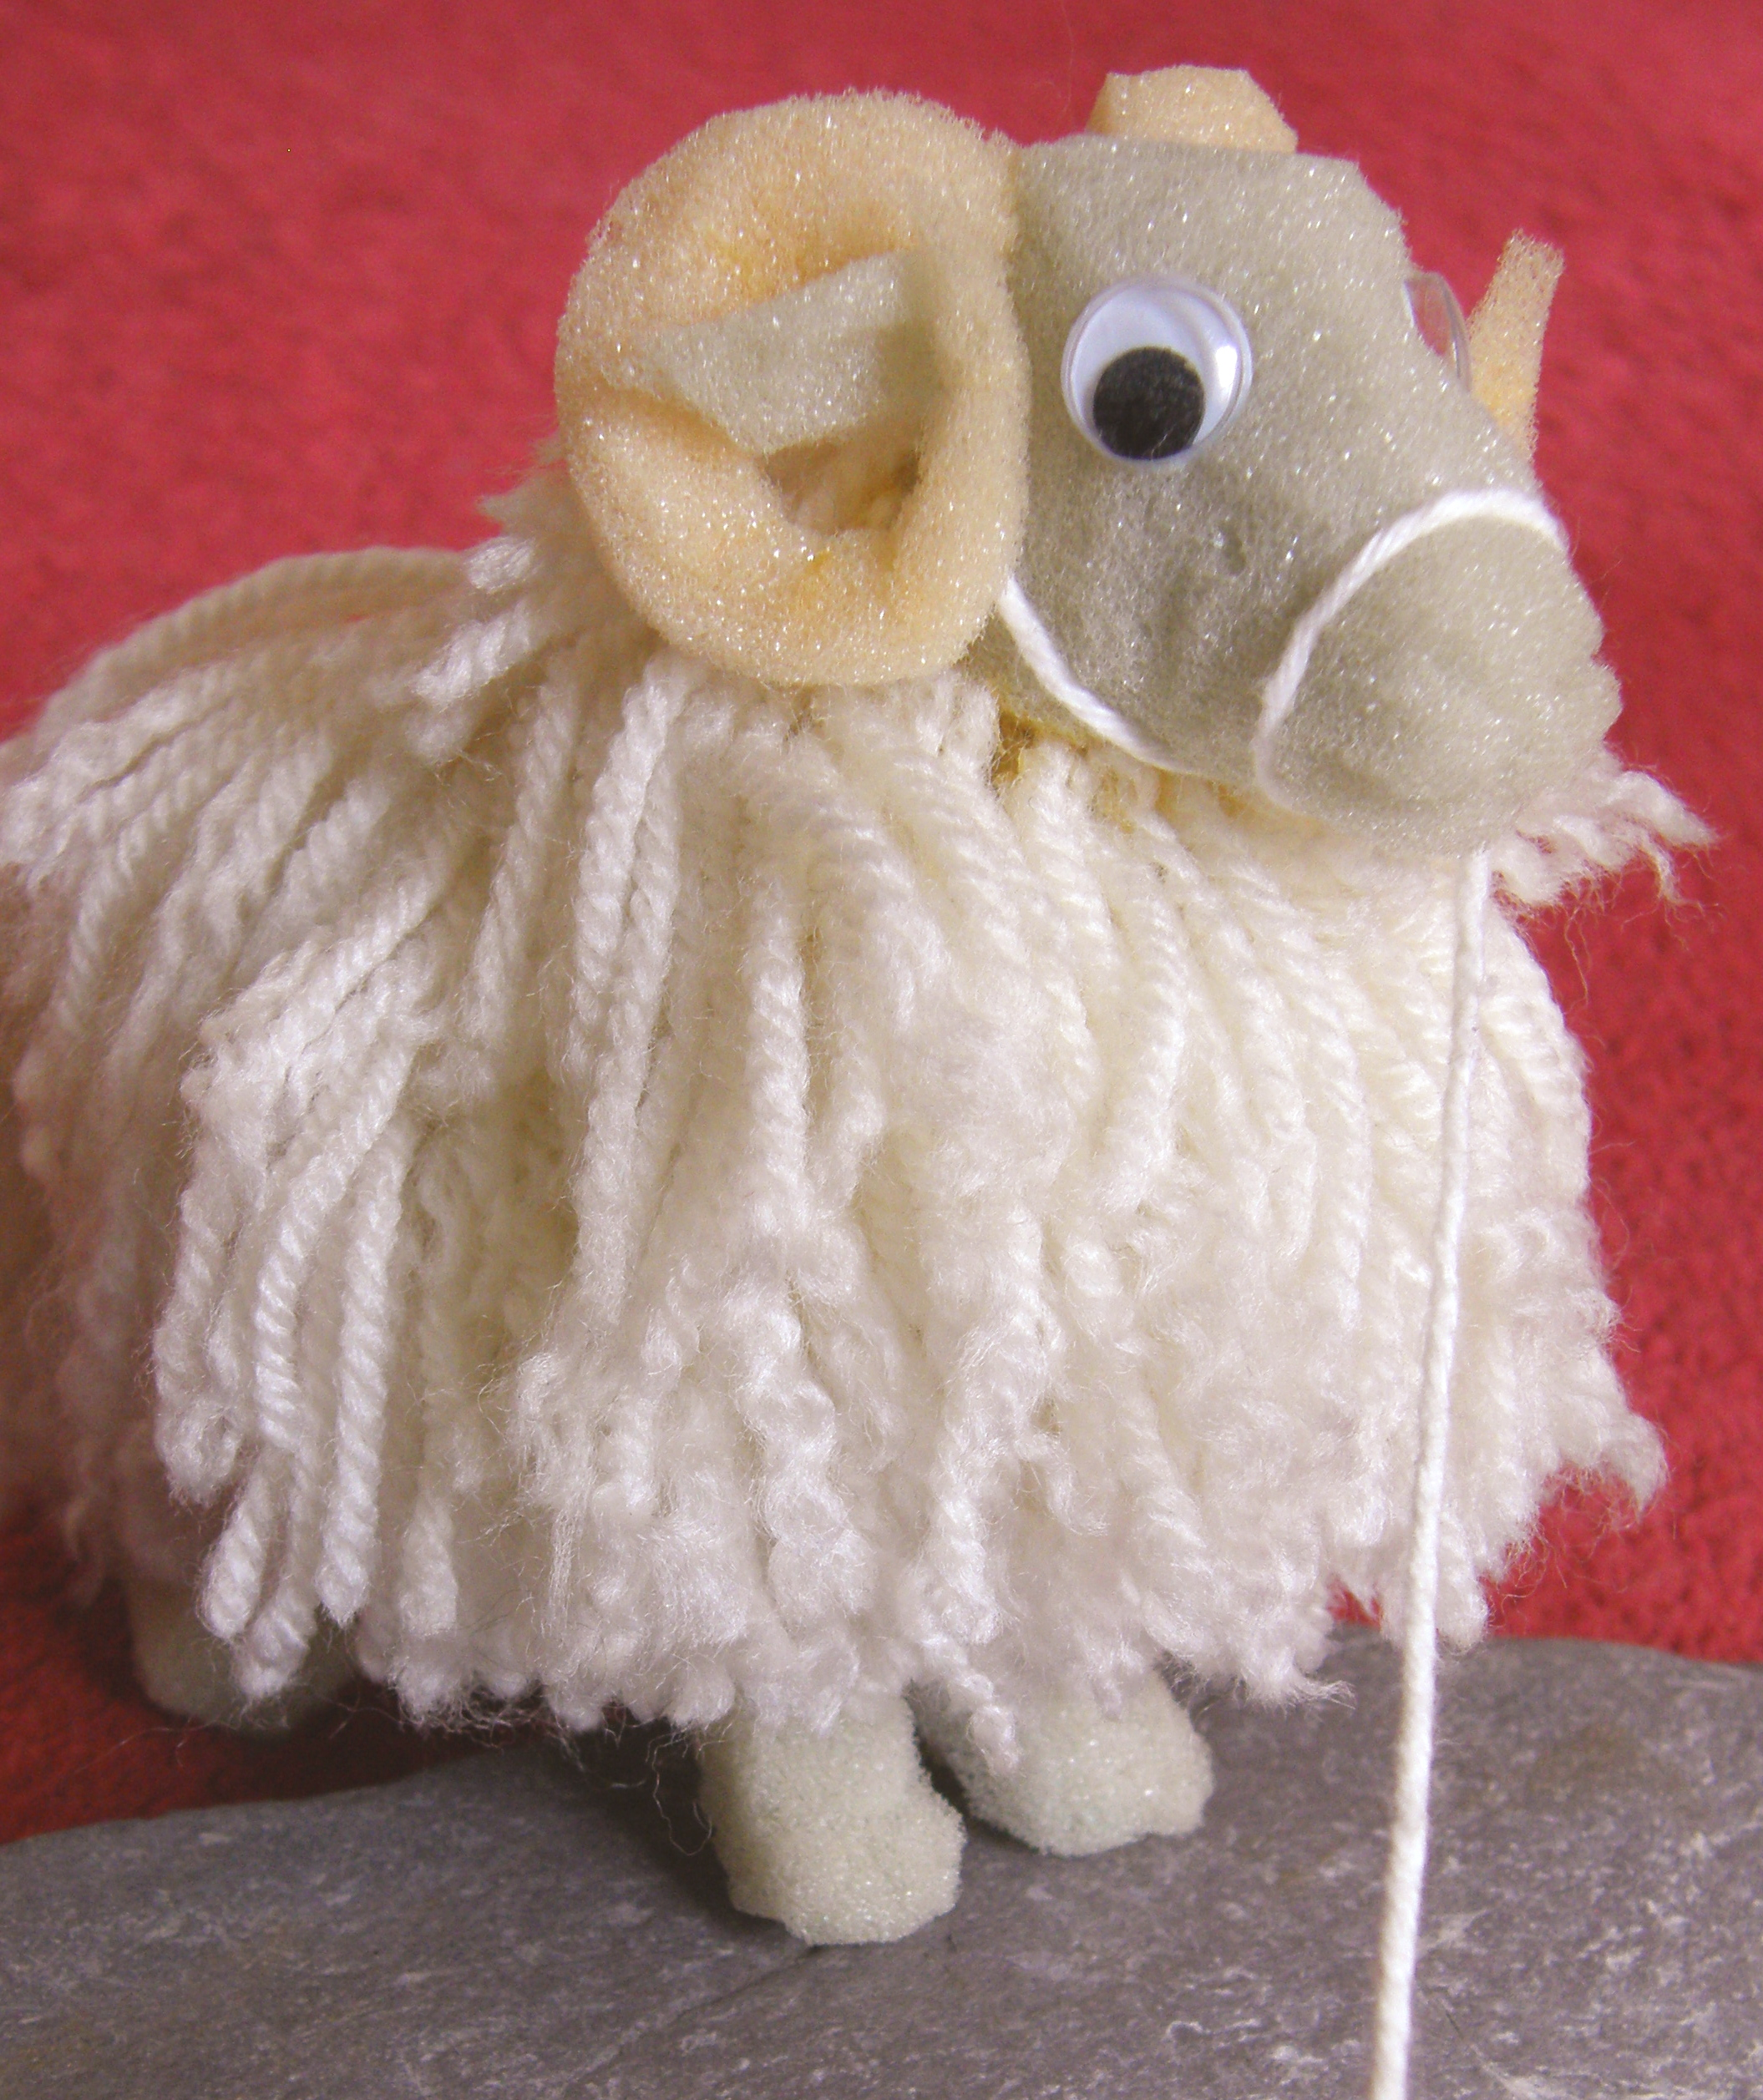 Sponge and Wool Sheep 1